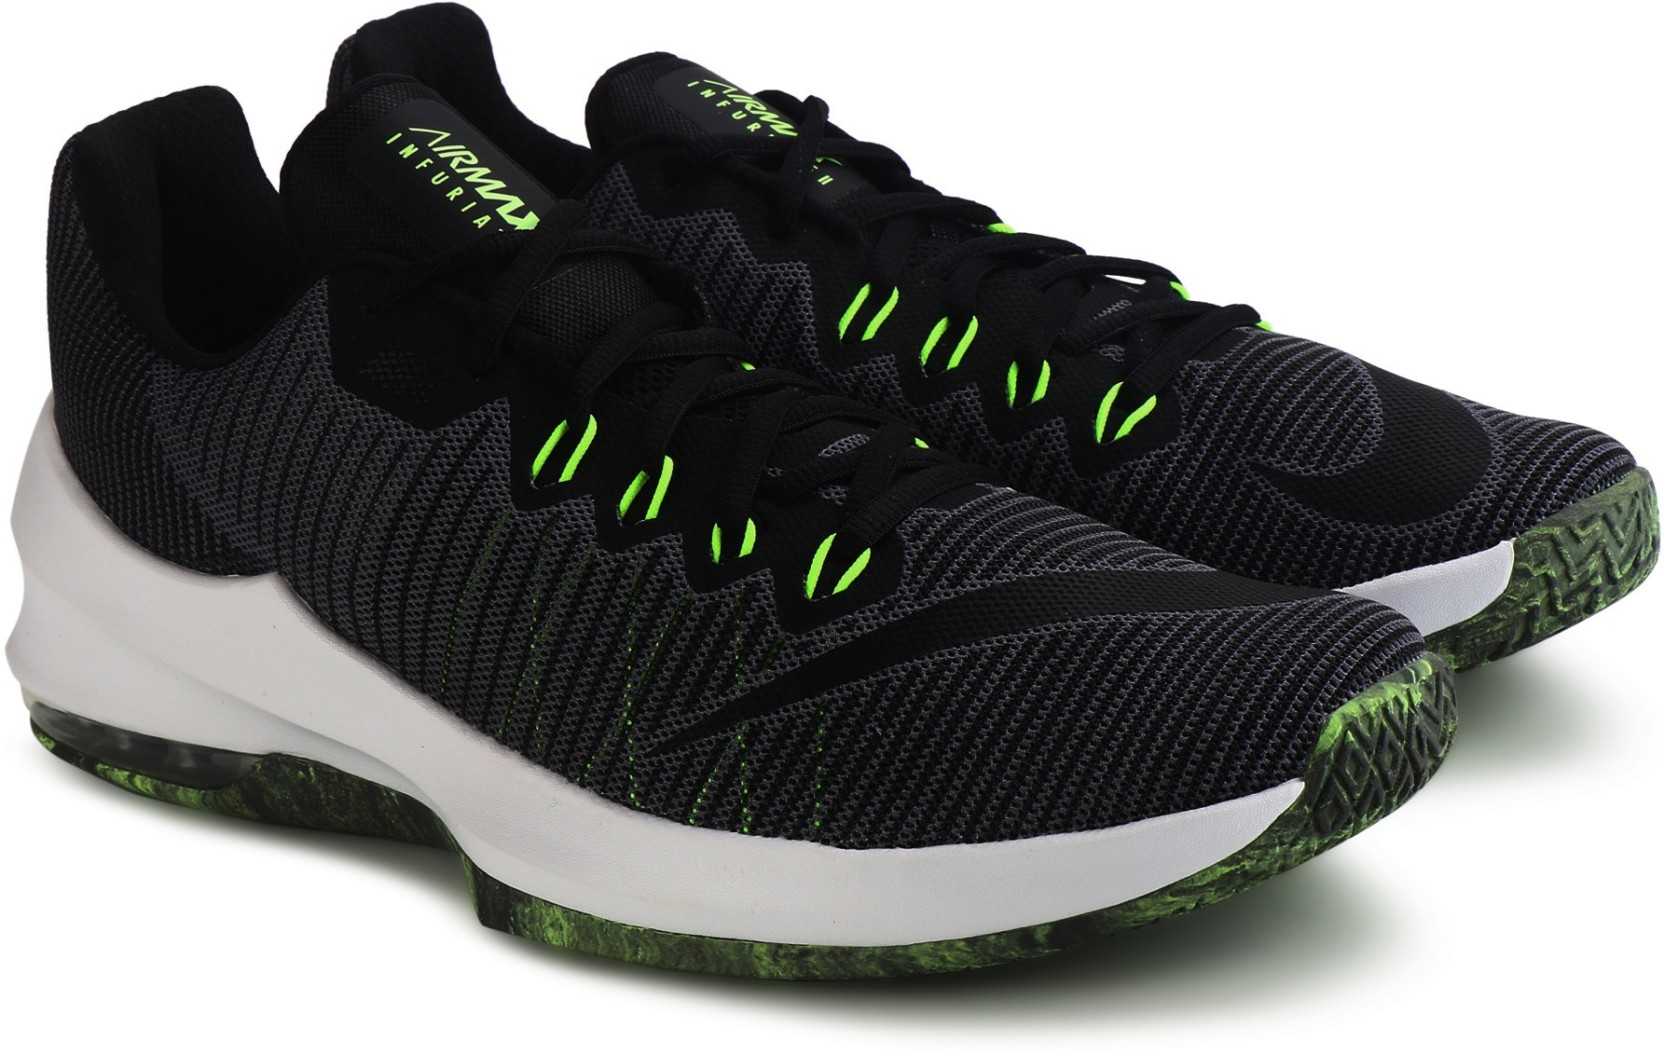 reputable site 3053c be144 Nike AIR MAX INFURIATE 2 LOW Basketball Shoes For Men (Black, Green)